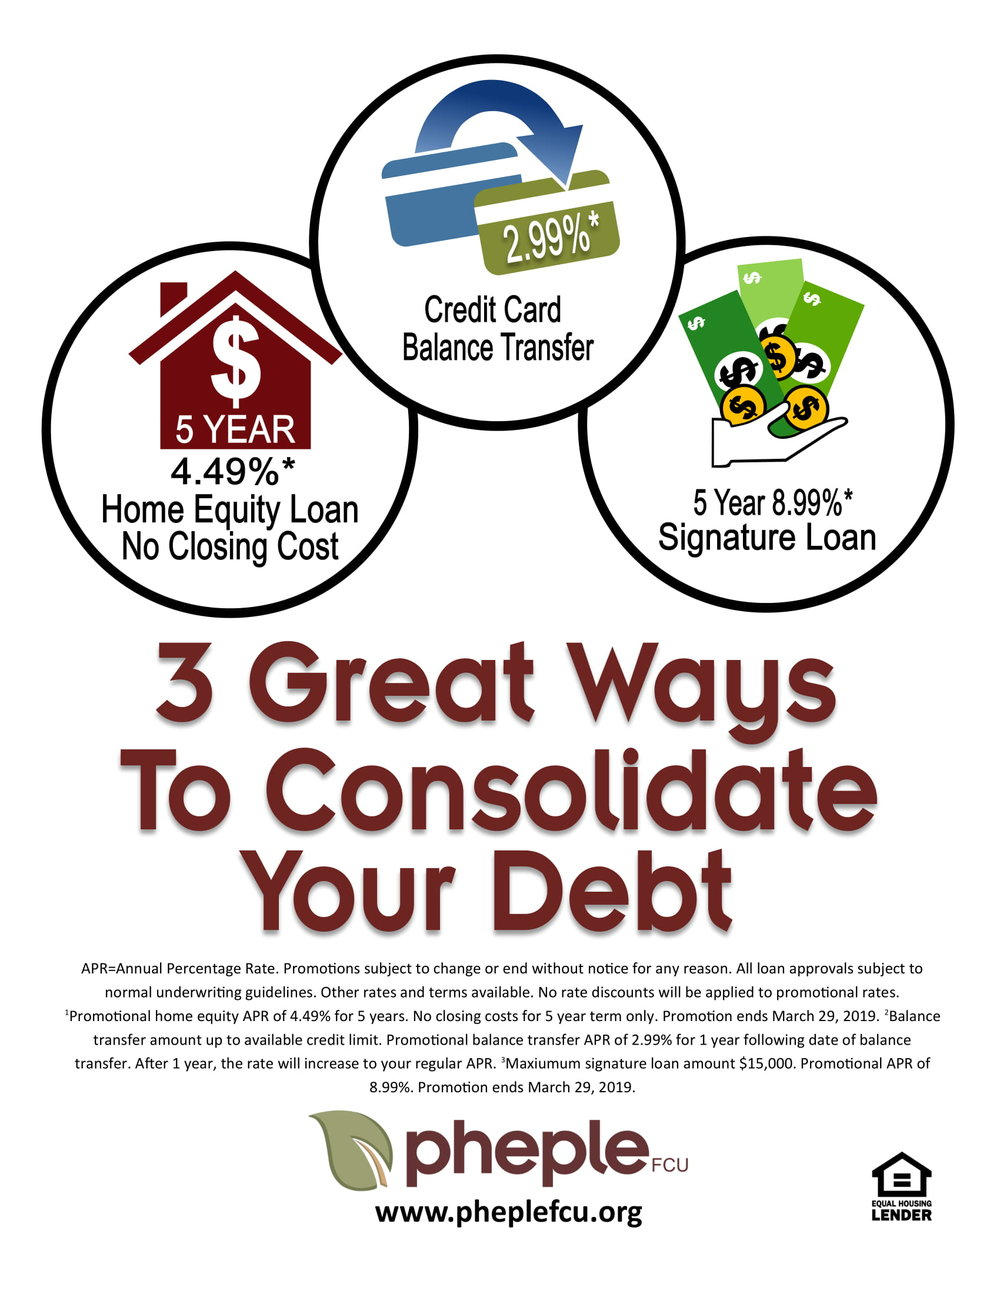 3 Great Ways to Consolidate Your Debt